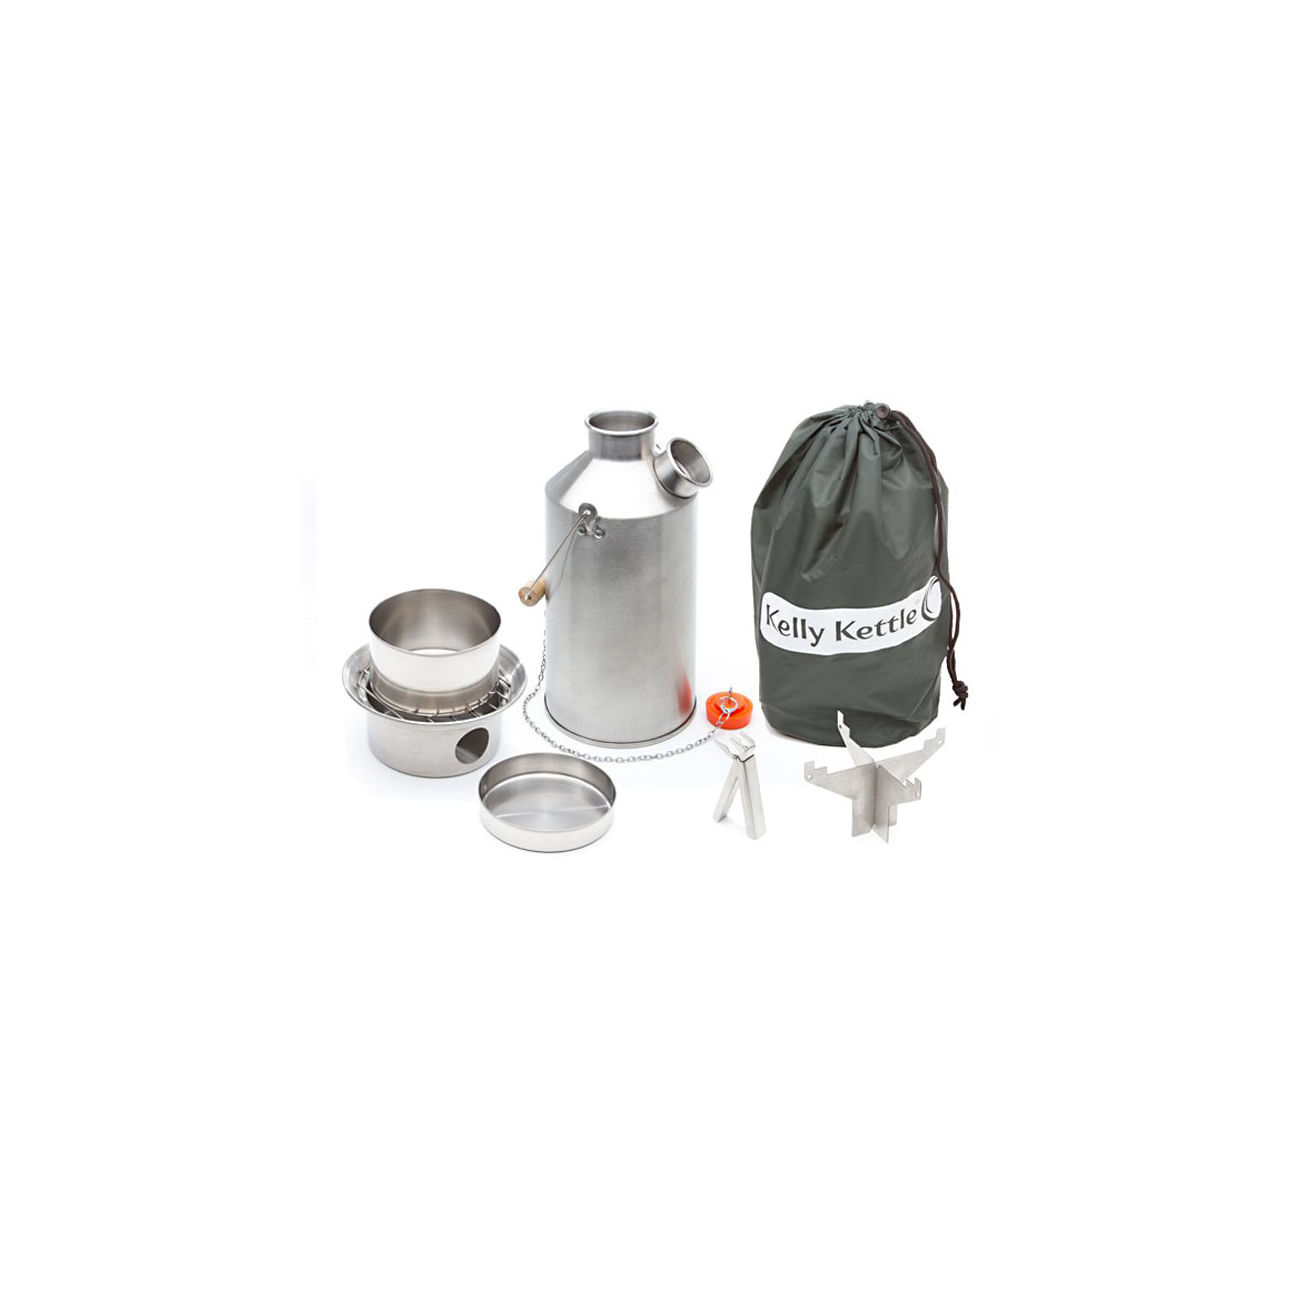 Kelly Kettle Basecamp Set 0